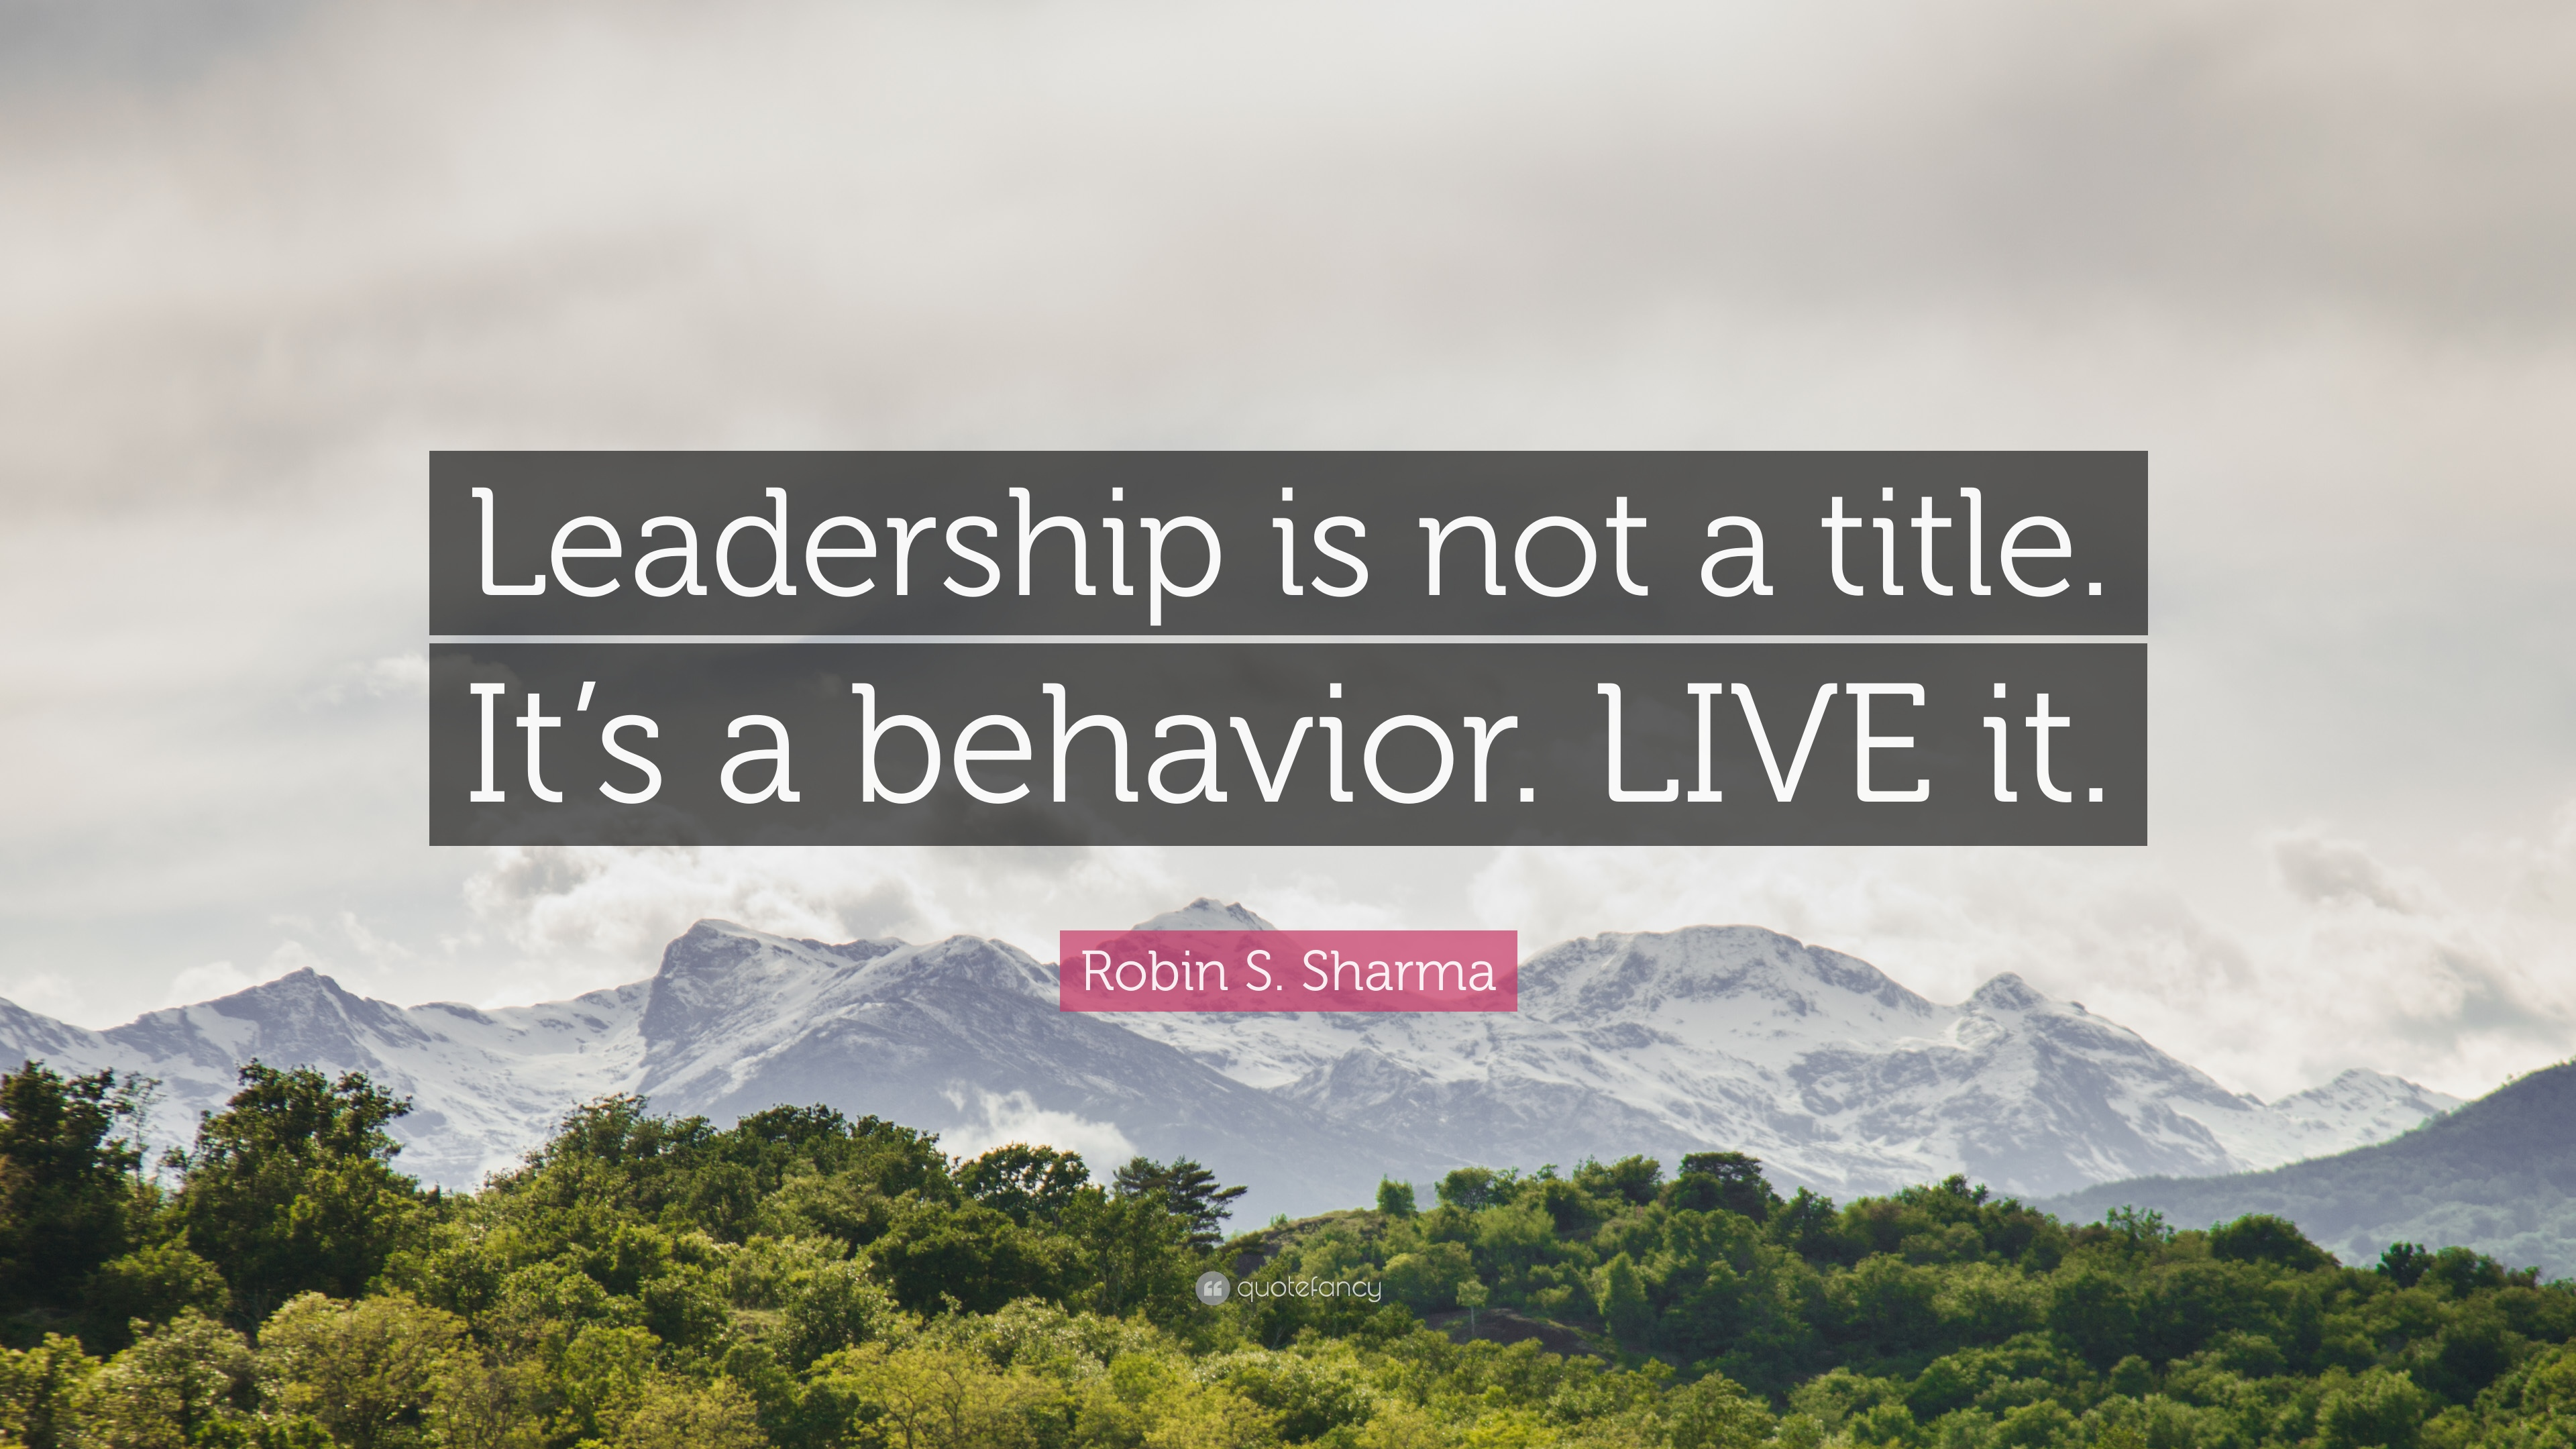 Robin S Sharma Quote Leadership Is Not A Title Its A Behavior